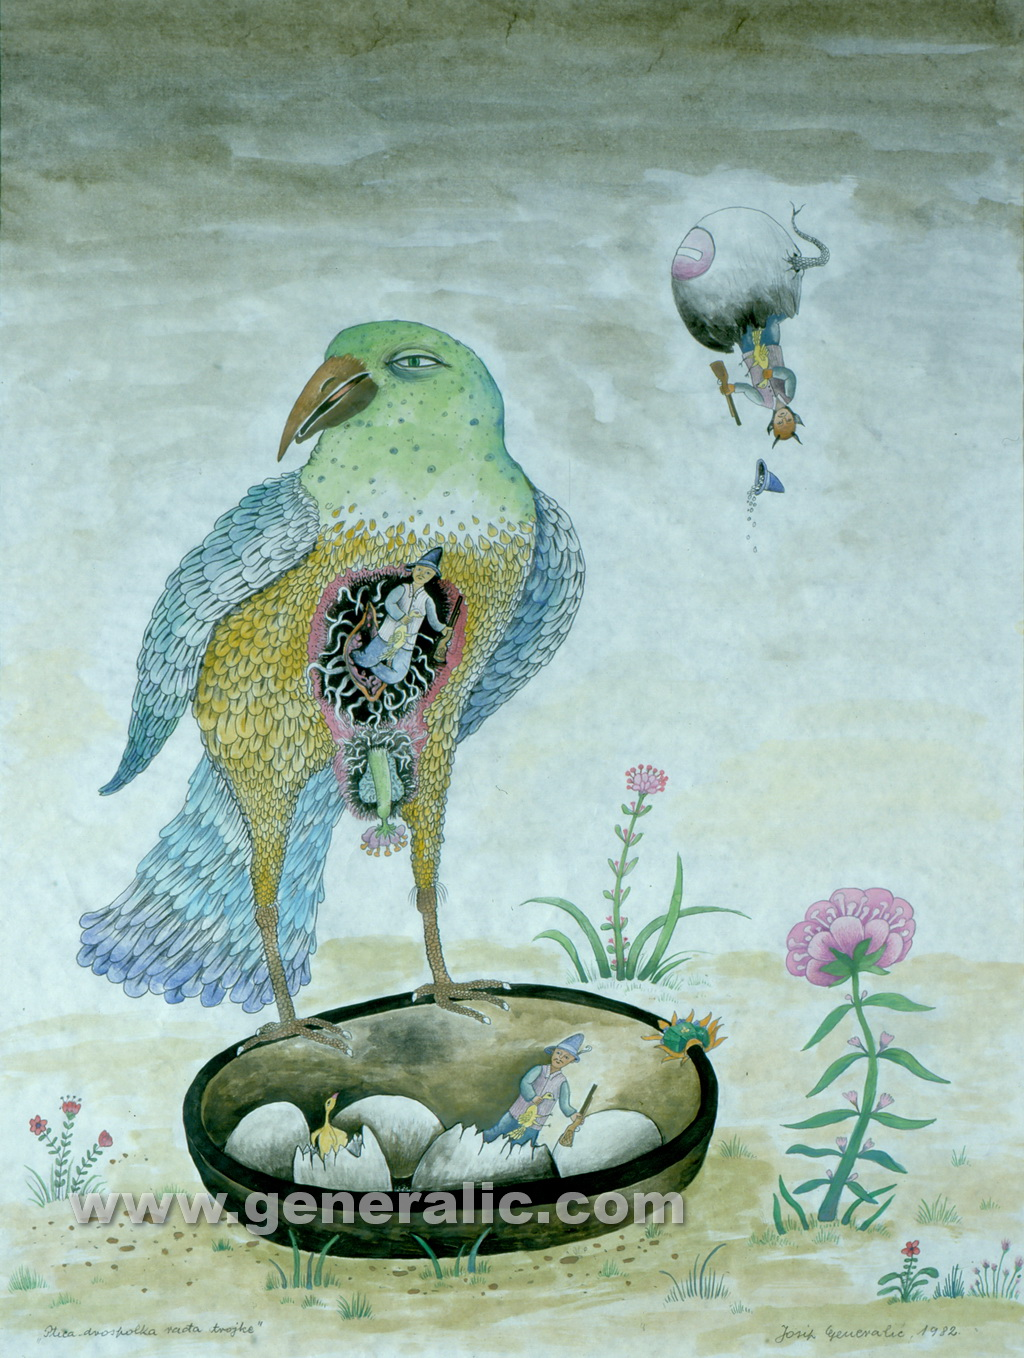 Josip Generalic, 1982, Hermaphrodite bird, watercolour